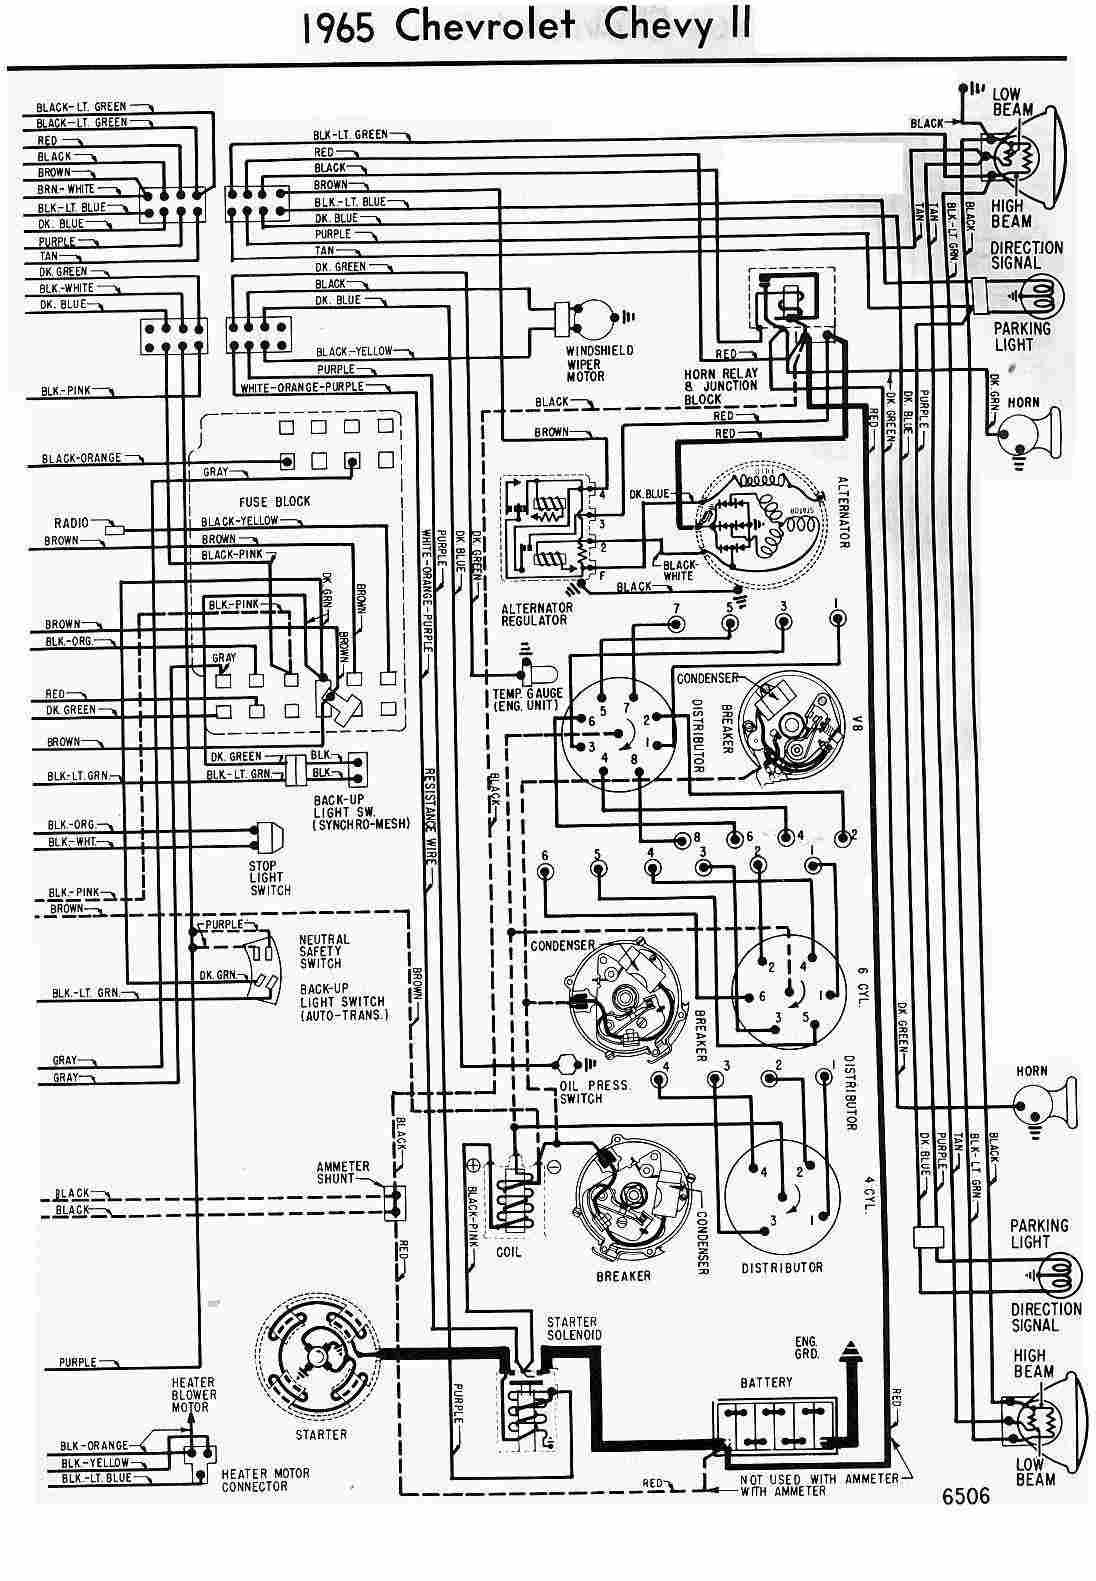 66 chevelle wiring schematics free download diagram schematic rh unroutine co 555 Timer Schematic Diagram 555 Timer Schematic Diagram